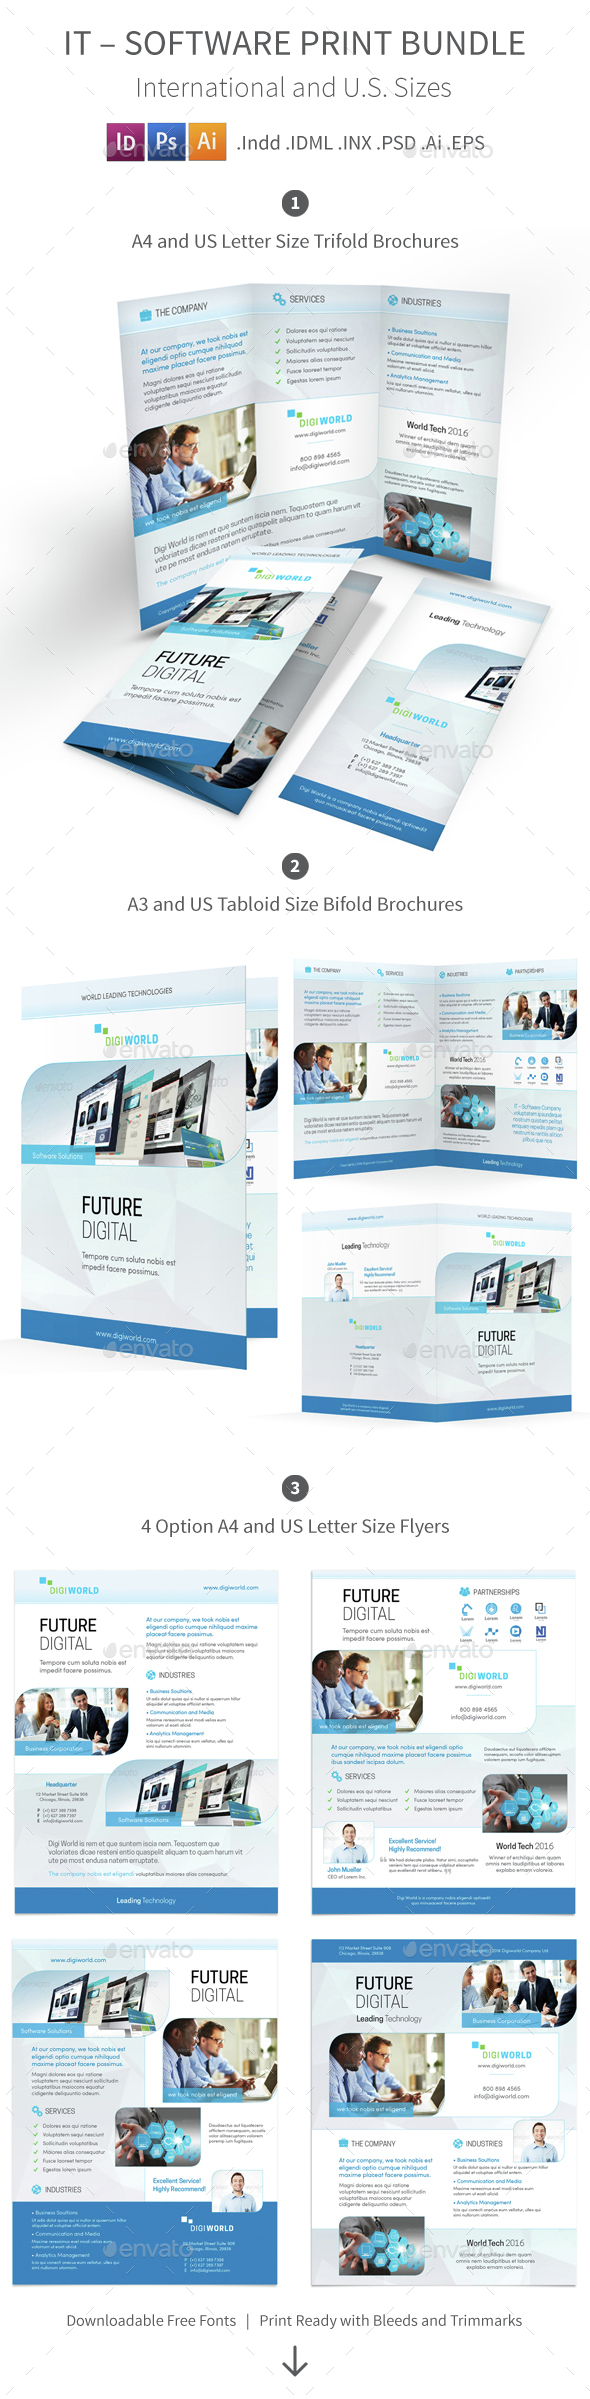 IT – Software Print Bundle 4 - Corporate Brochures